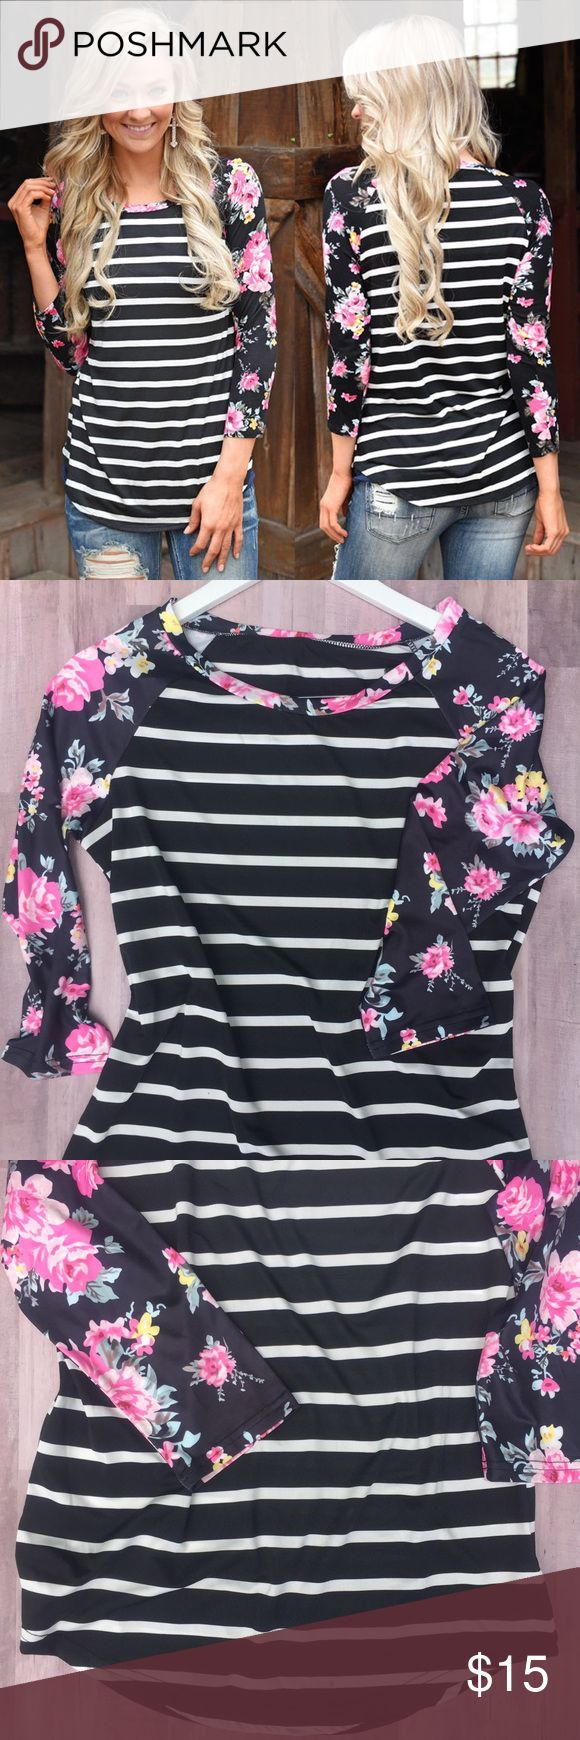 Floral & Strips Baseball Tee Cute Flower Print & Strips Mix Baseball T-Shirt. Worn once for a photo shoot & once very small dot stain on back of the shirt(pictured). Tops Tees - Long Sleeve